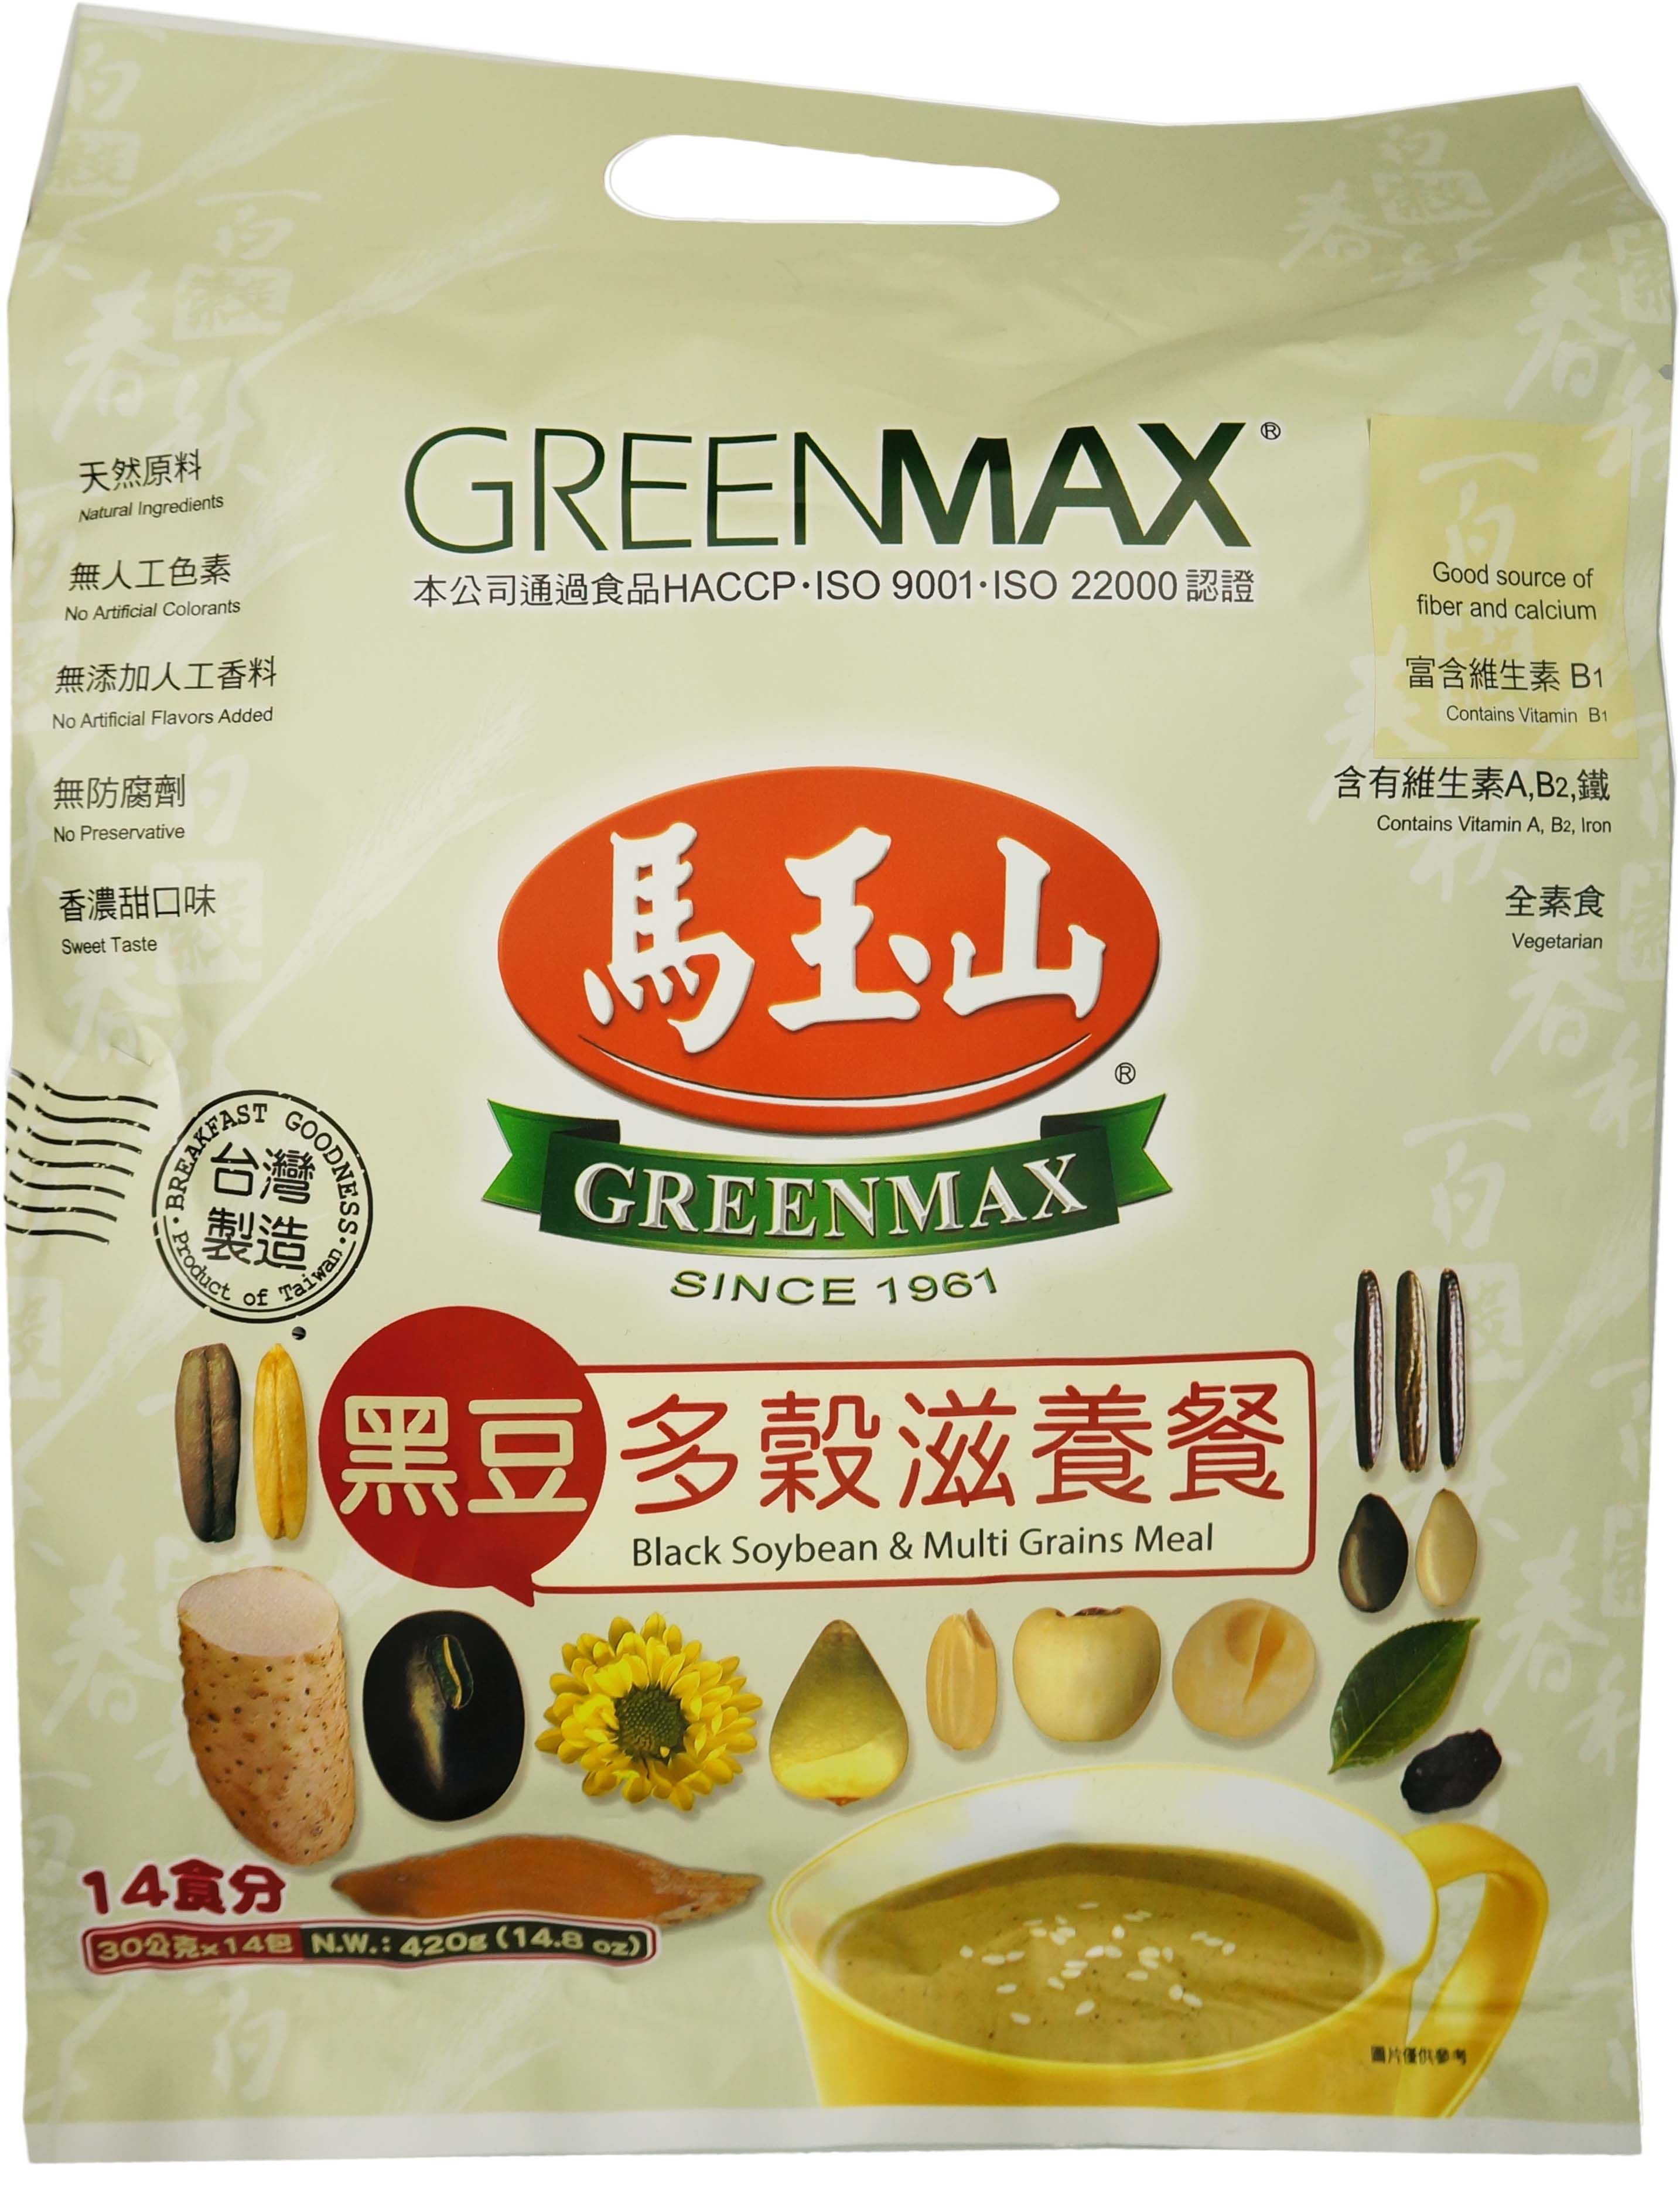 GREENMAX BLK SOYBEAN & MULTI GRIAN MEAL 281119T115